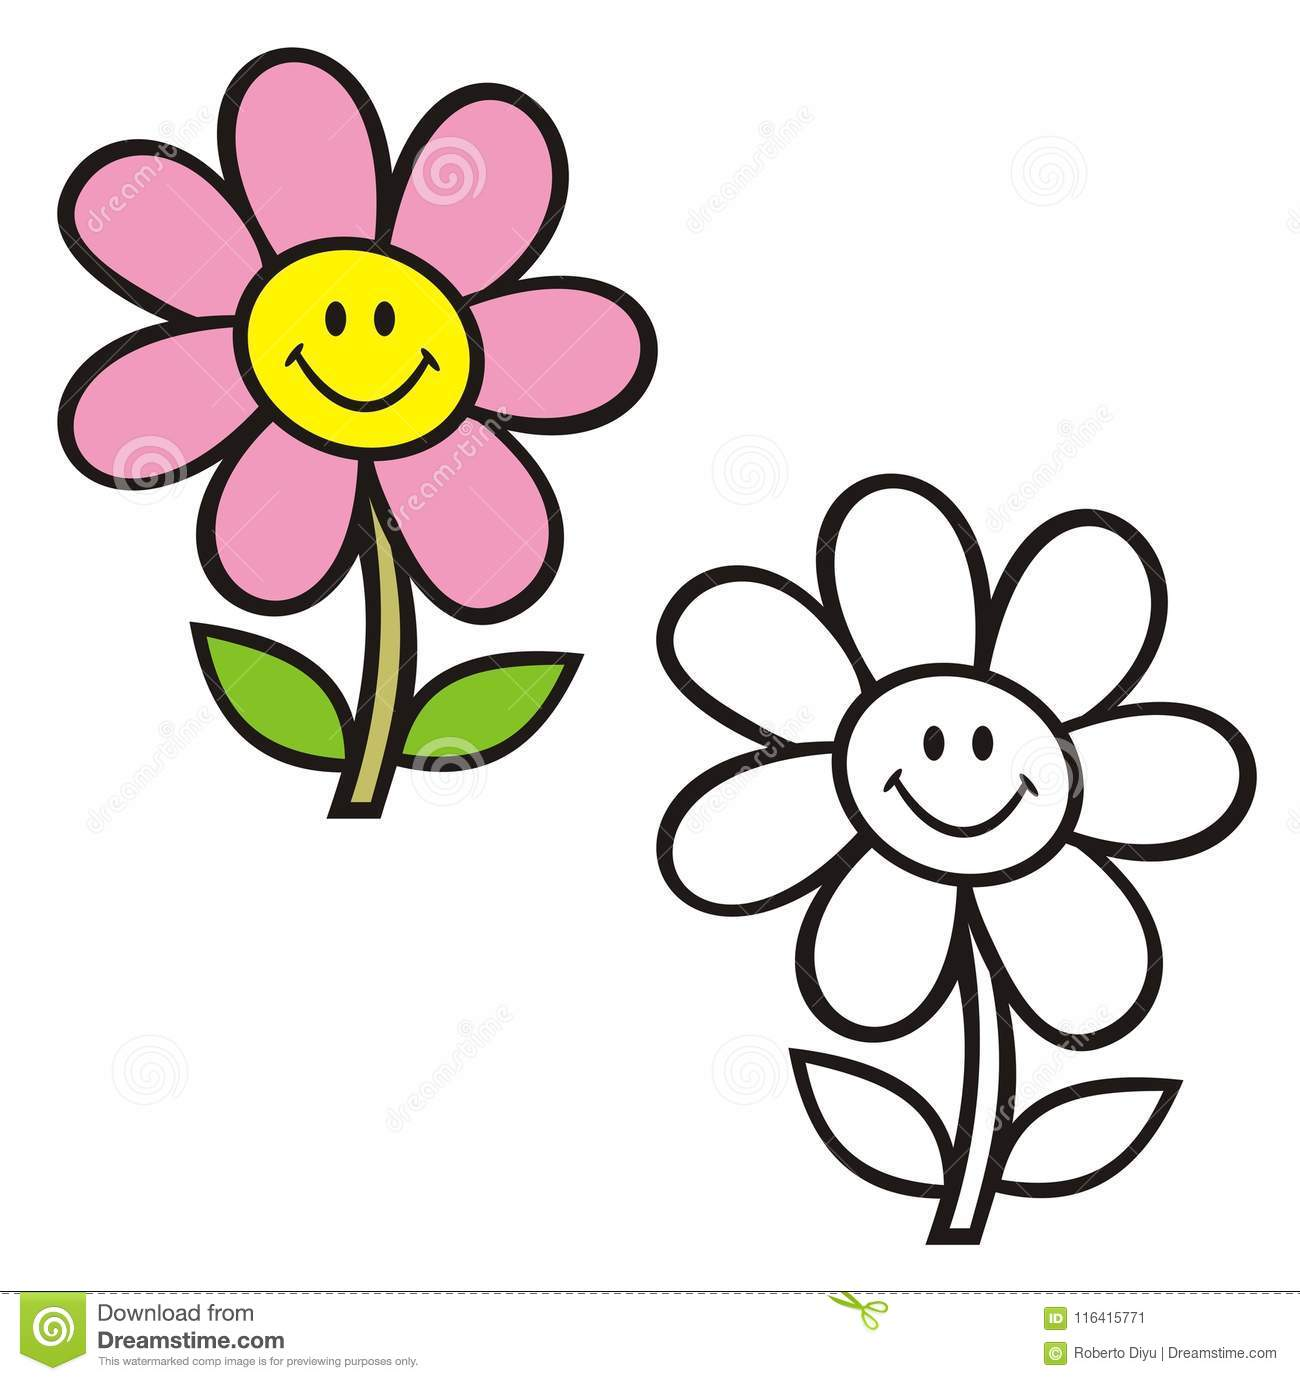 Stem And Flower With Smiley Face. Coloring Book. Stock Vector ...